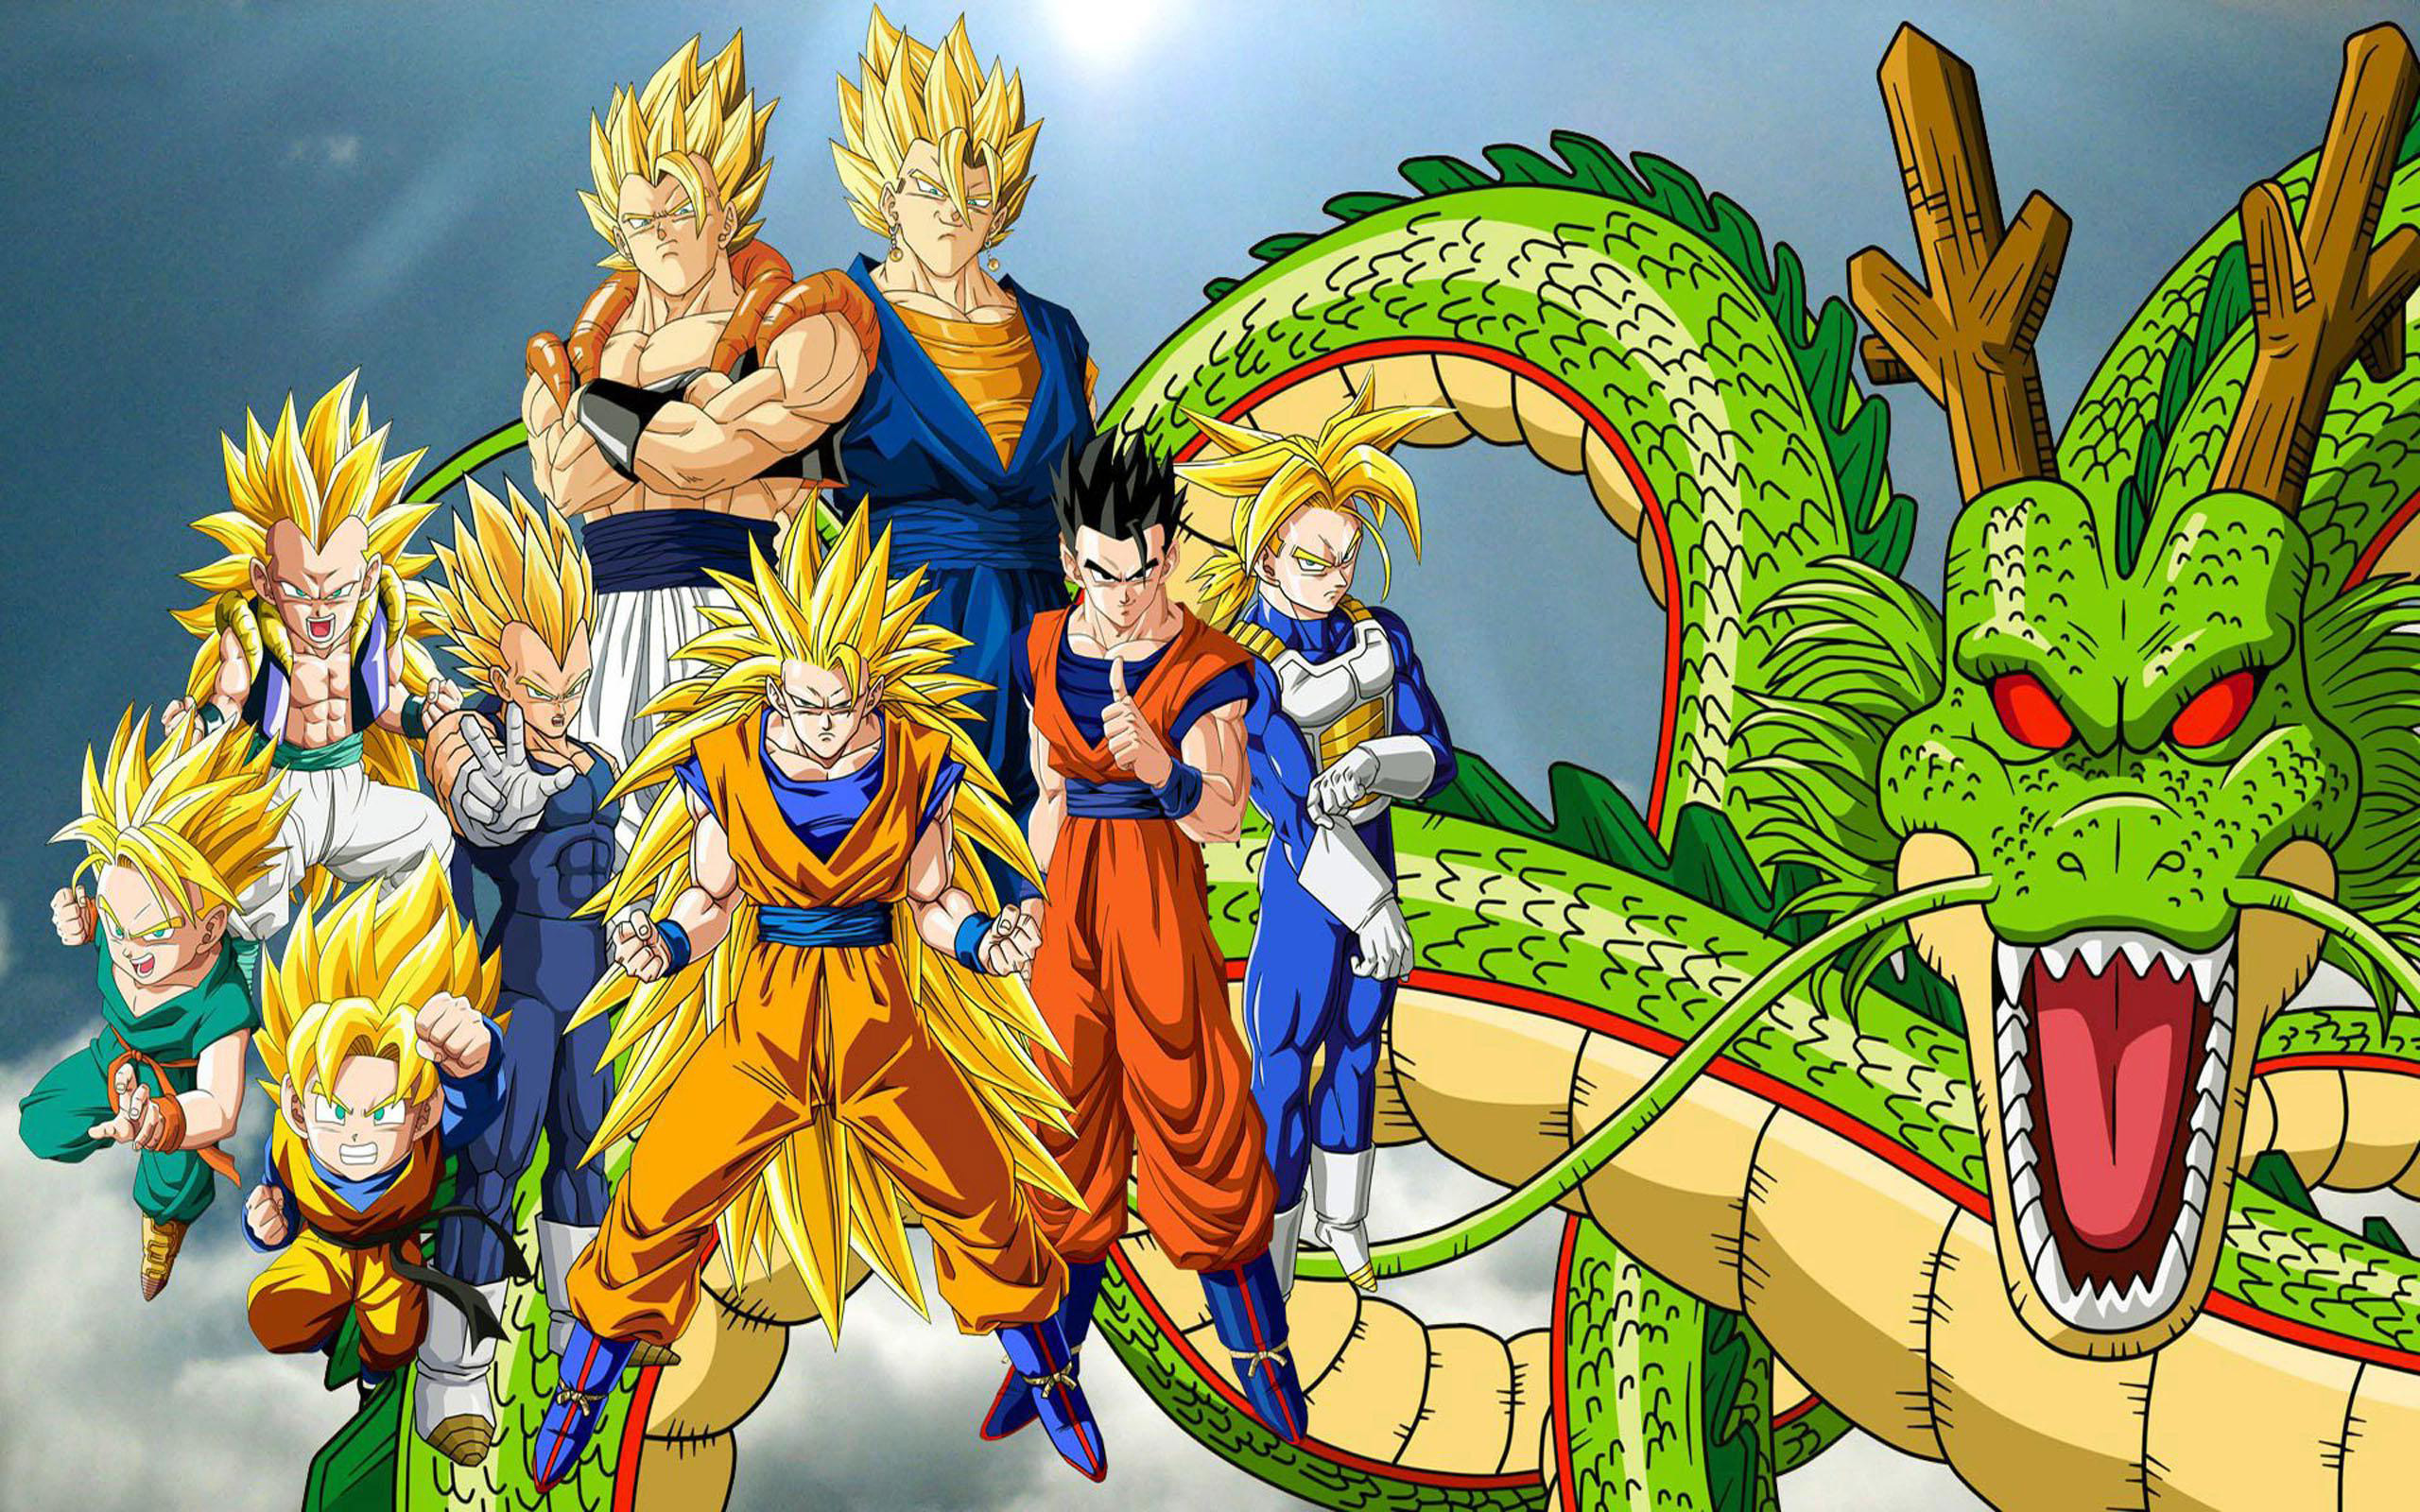 Dragon ball z super saiyan and shen long high resolution - Dragon ball super background music mp3 download ...